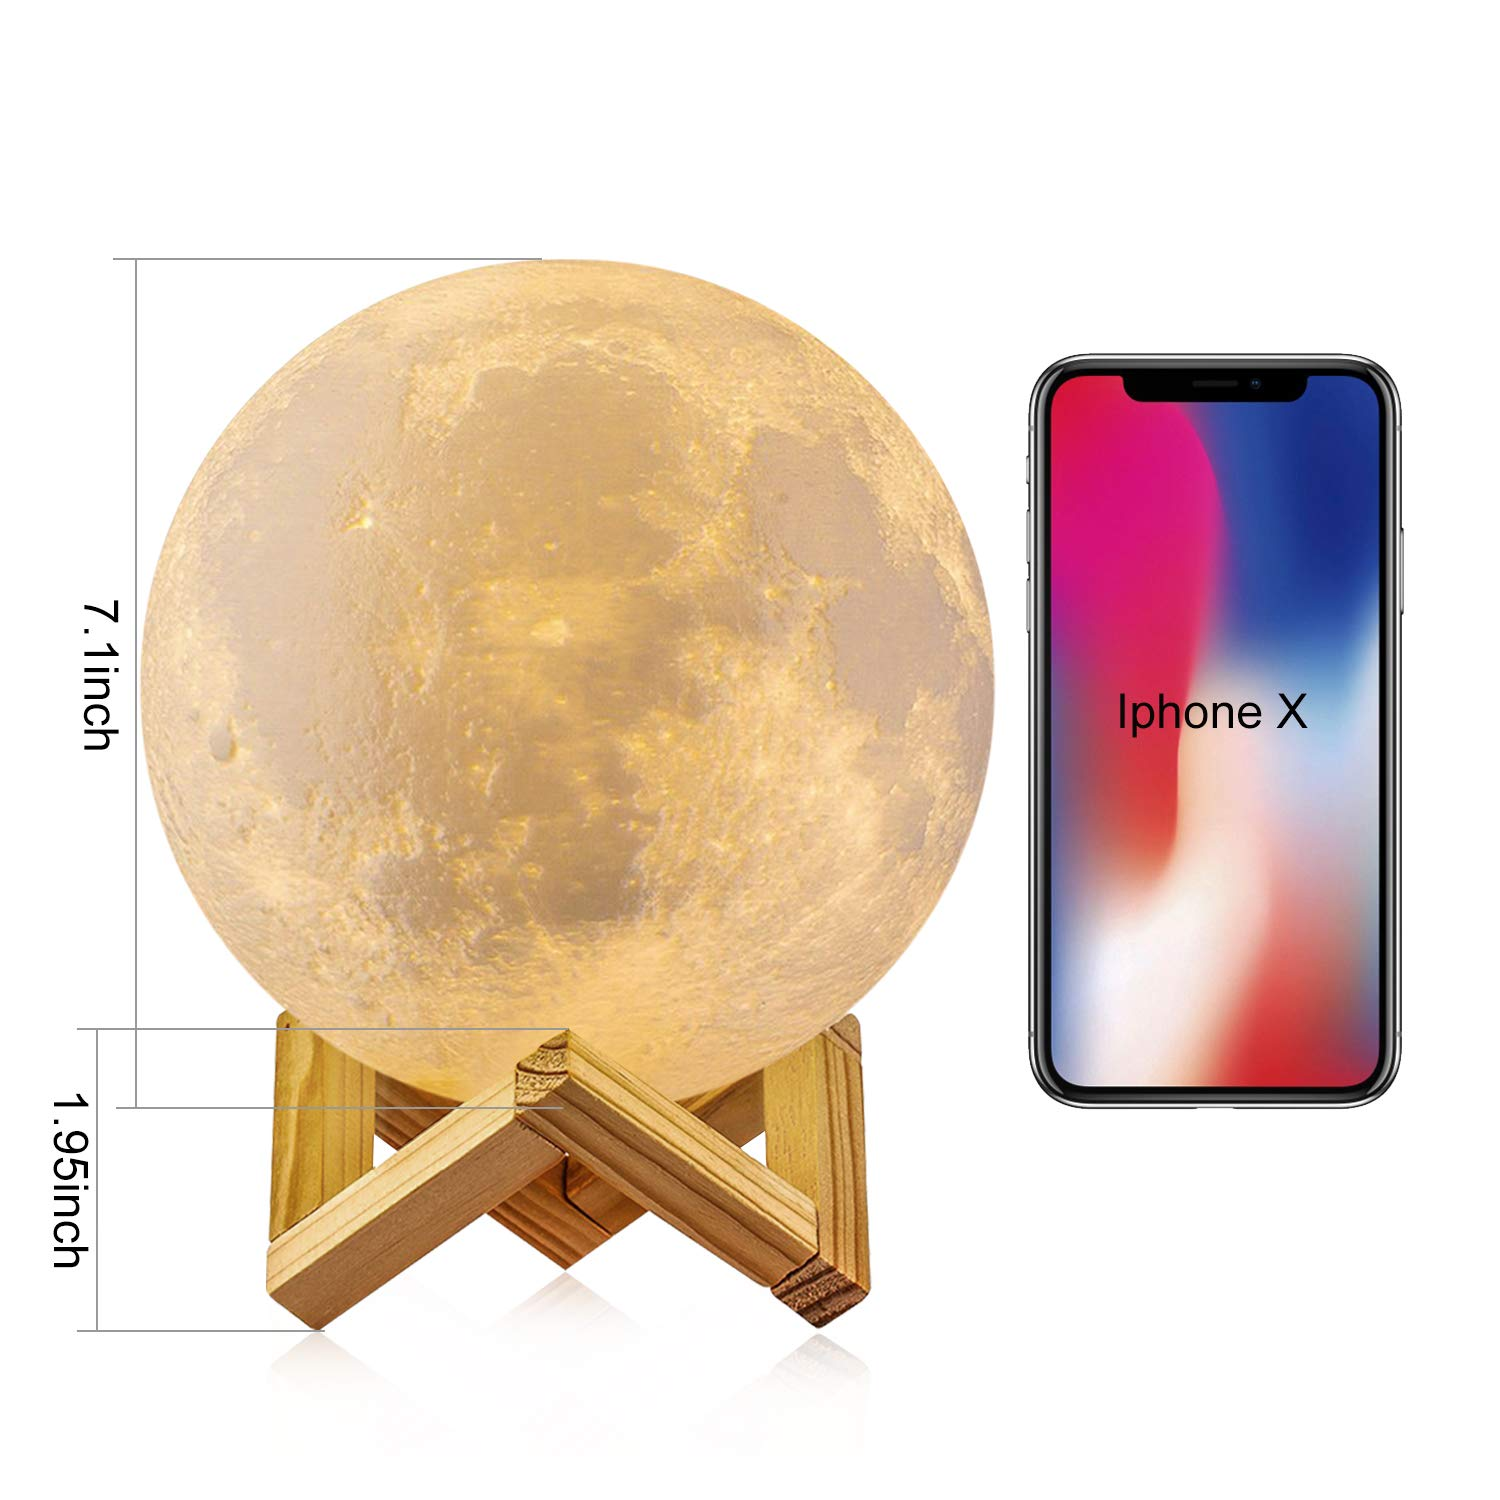 7.3 inch 3D Printing 16 Colors Moon Night Light with Stand /& Remote /&Touch Control and USB Rechargeable Decorative Light Up Moon Light for Baby Kids Lover Birthday Party Gifts GDPETS Moon Lamp